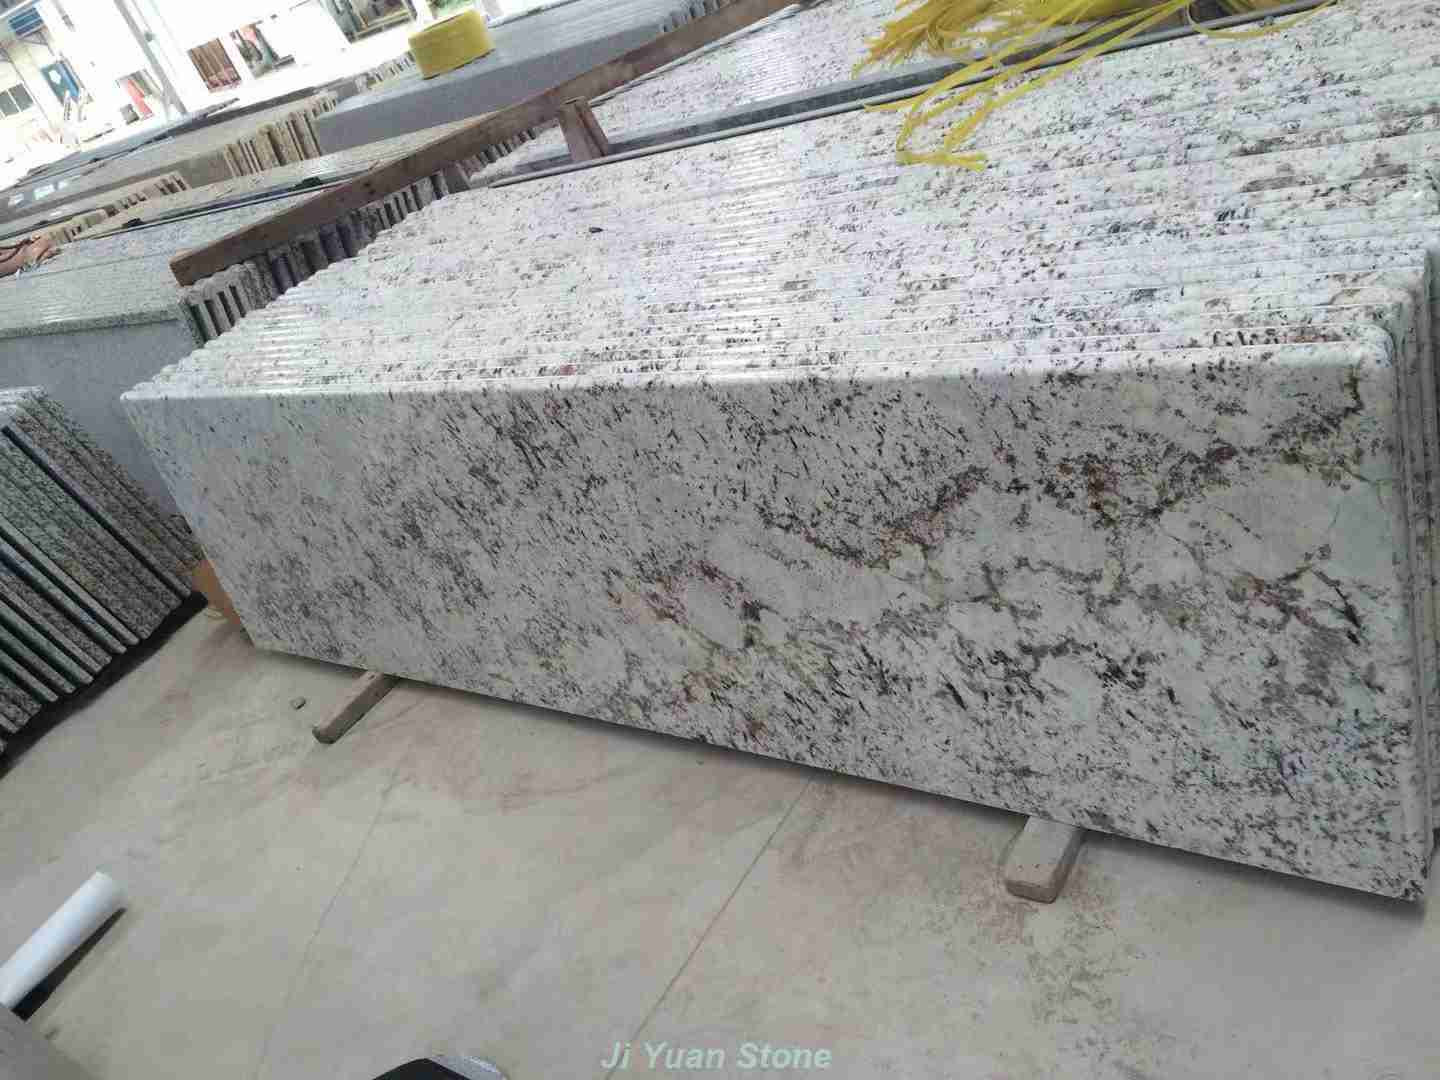 White galaxy granite,galaxy granite,white galaxy,galaxy countertops,white galaxy granite price,star galaxy granite,white galaxy granite slabs,white galaxy granite countertops